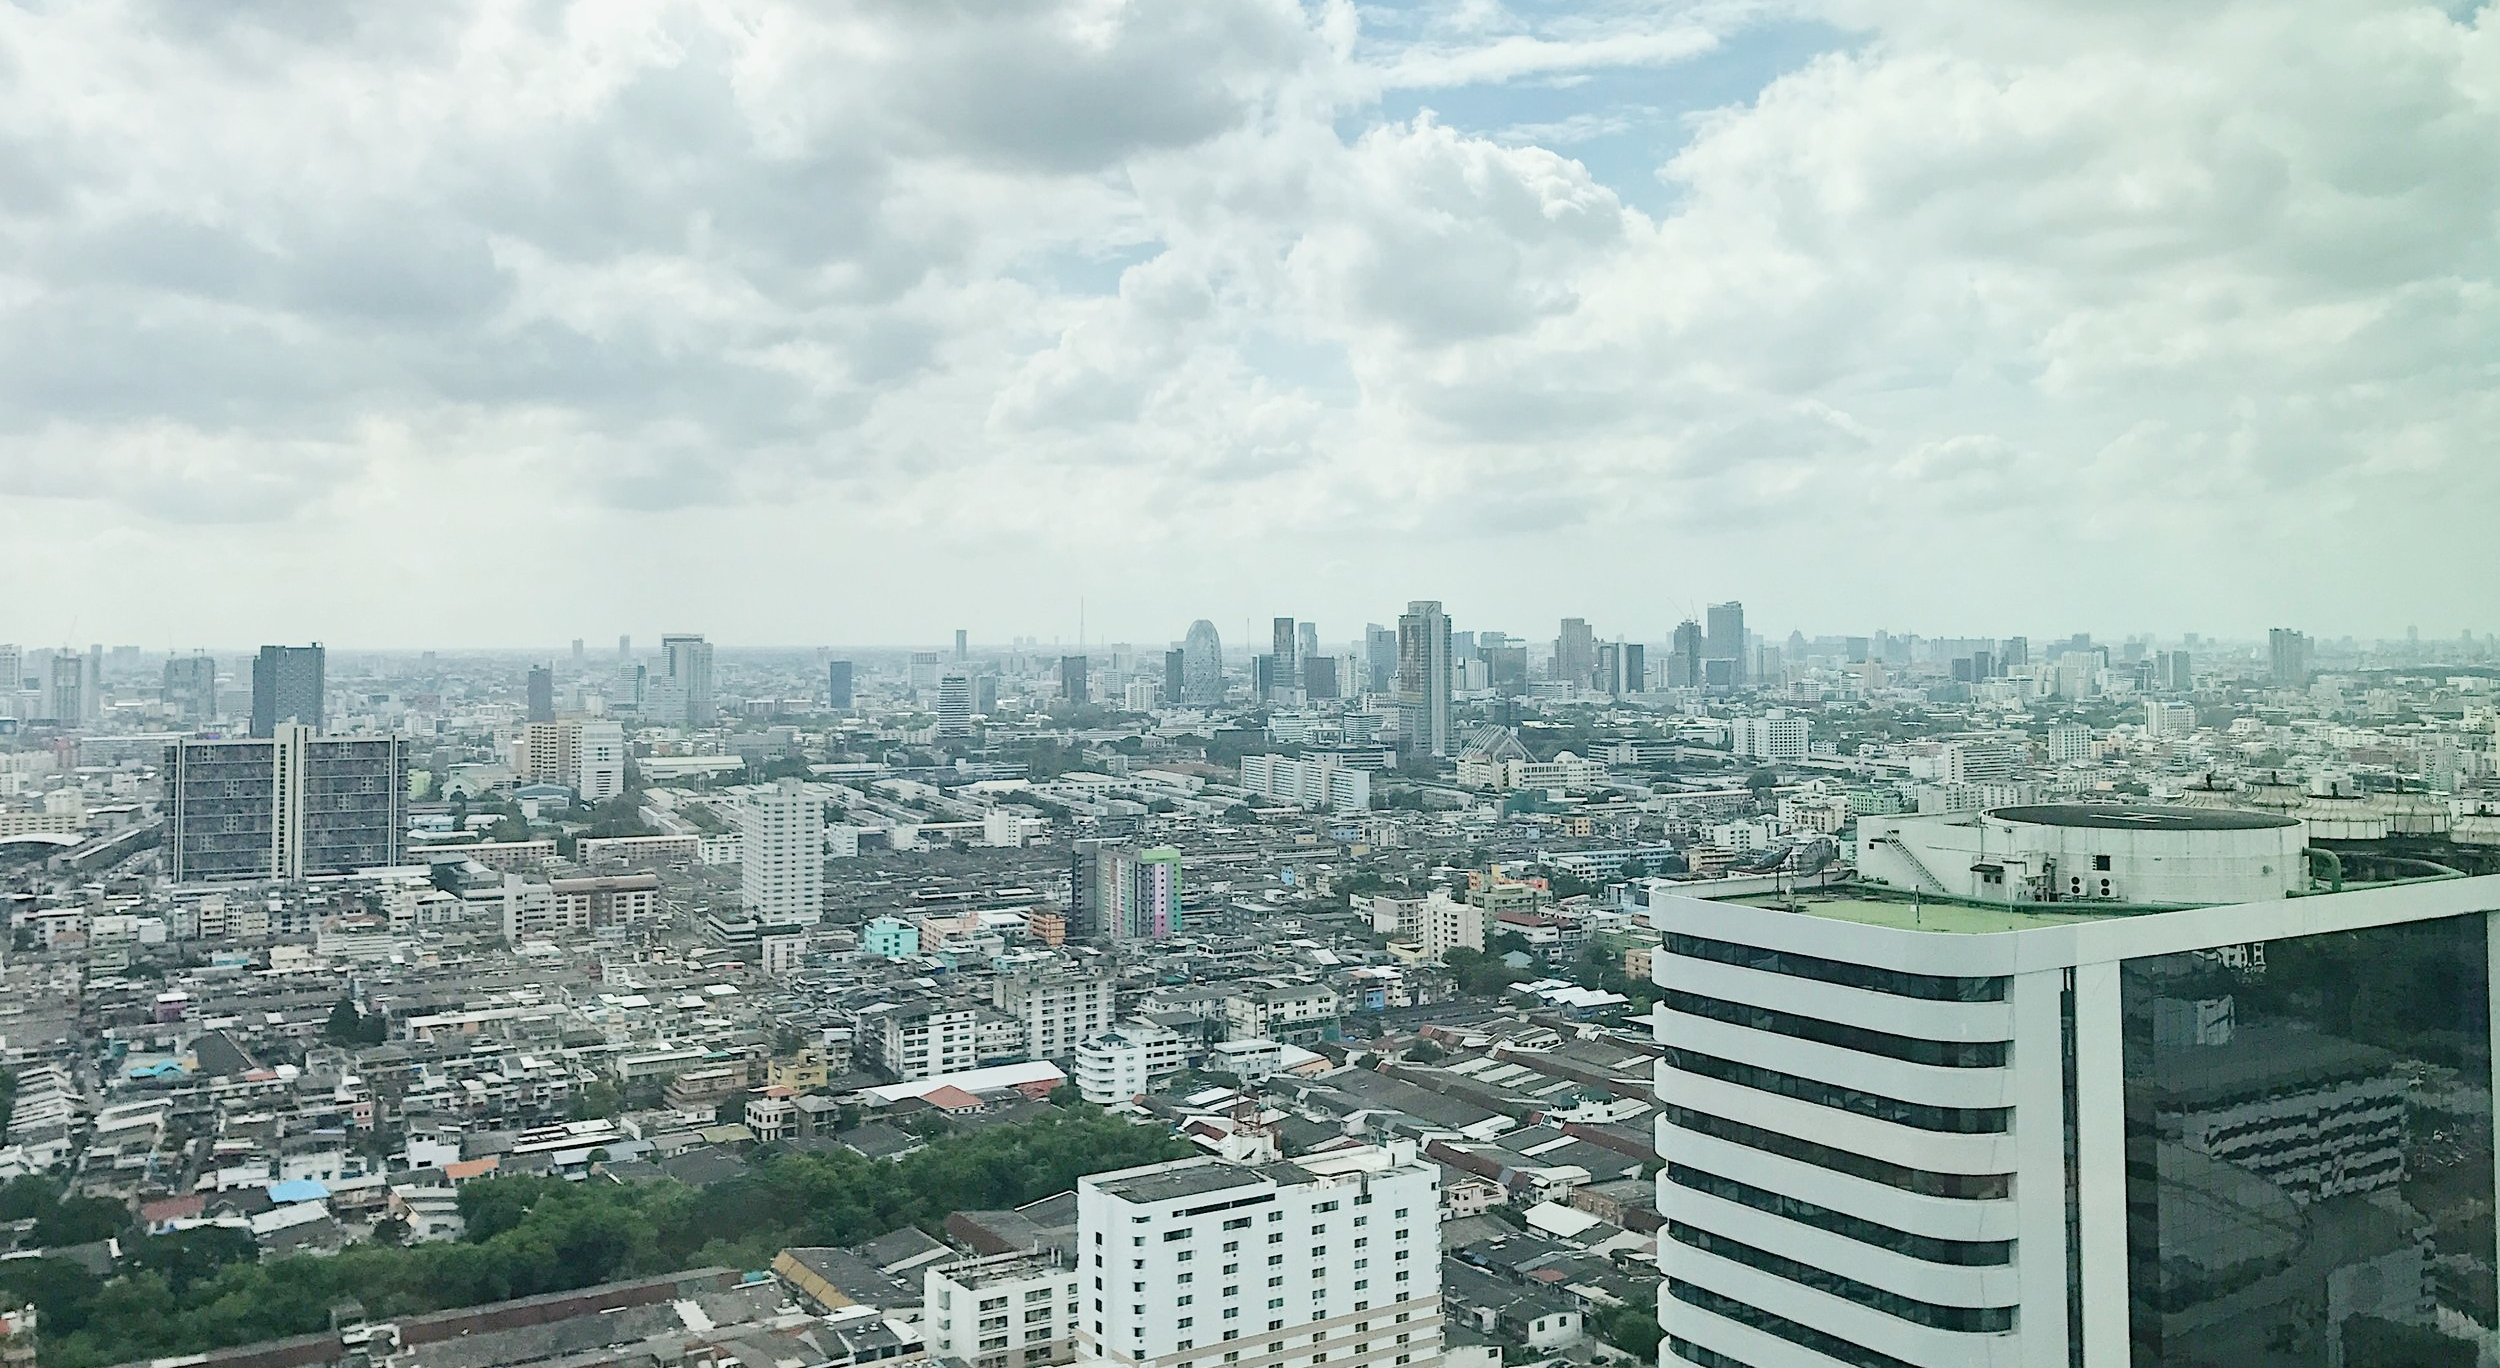 View from the 32nd Floor of G Tower, which houses ThoughtWorks' Bangkok office.